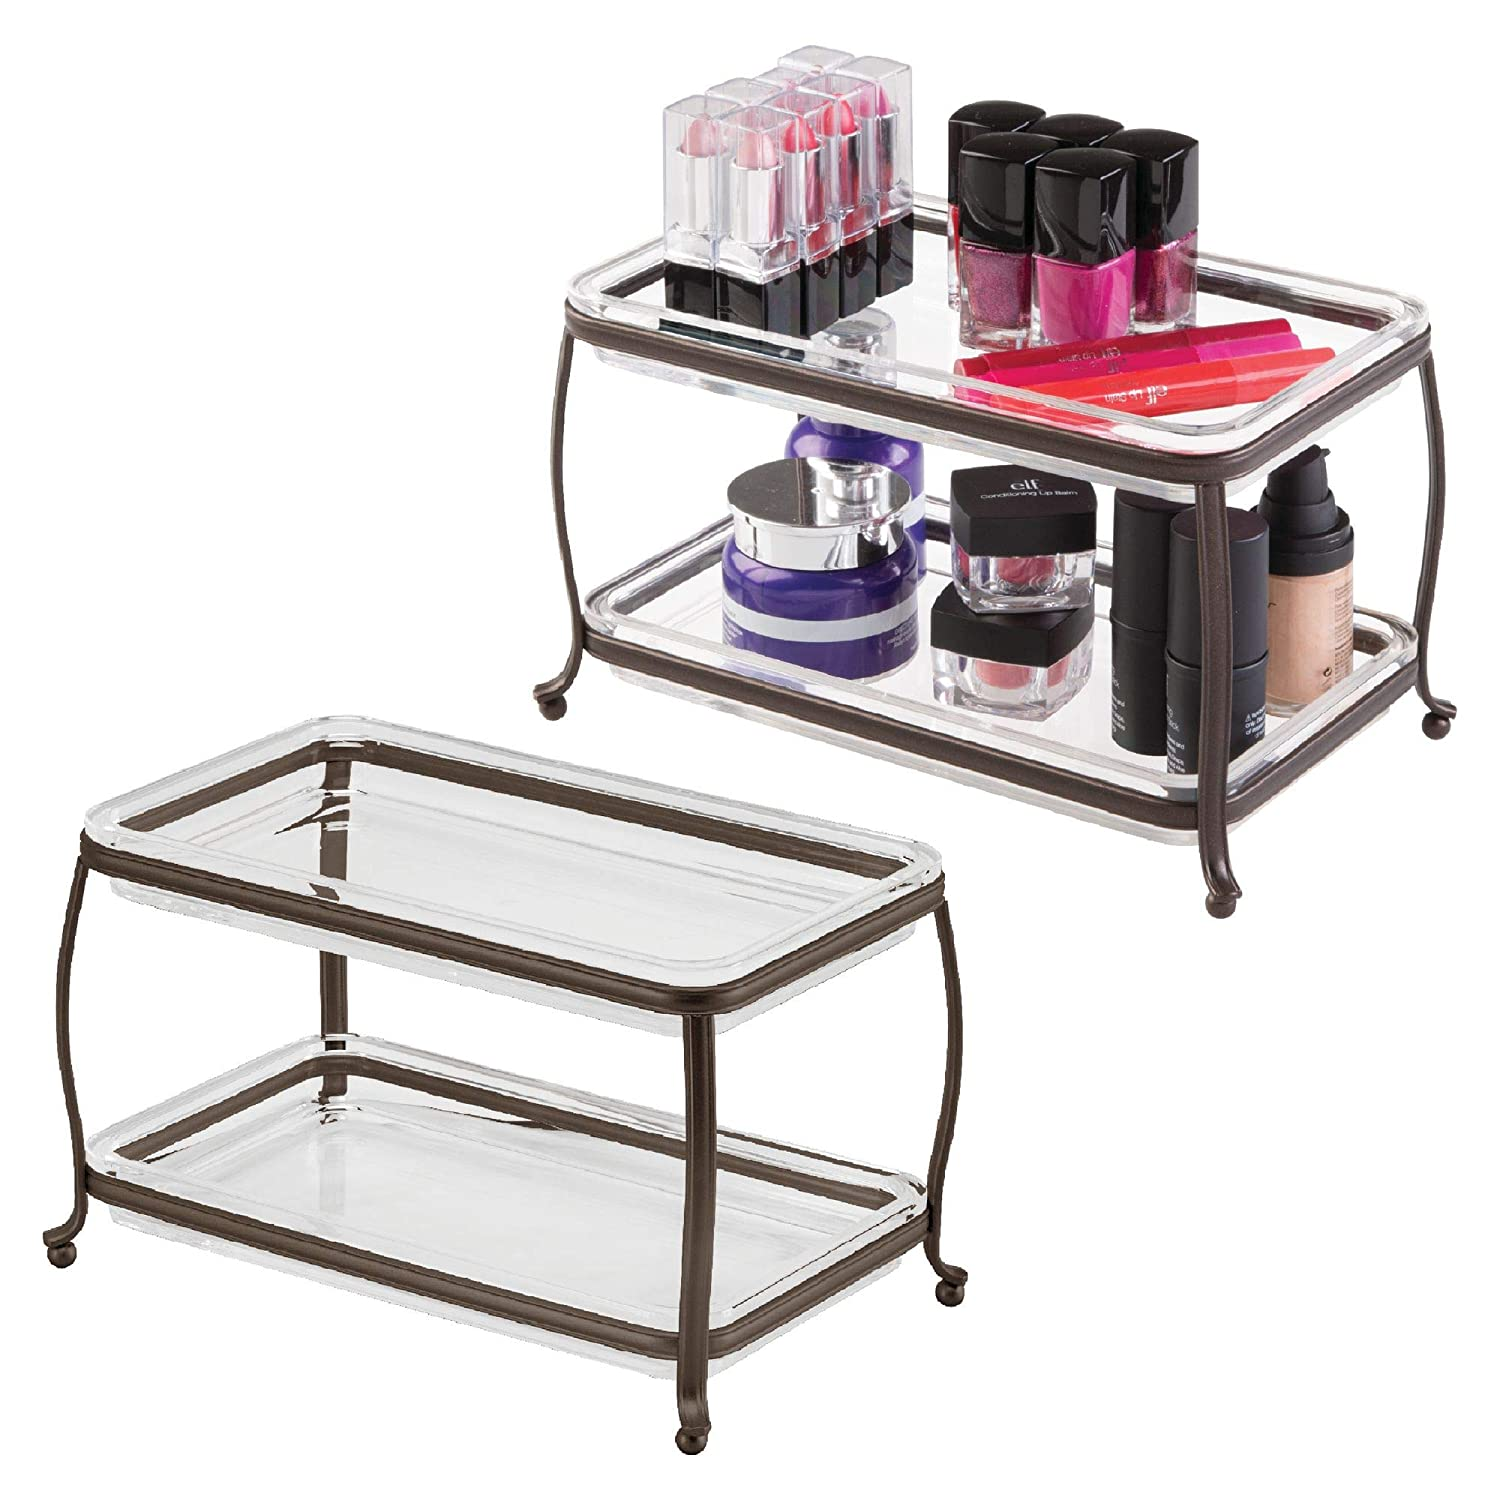 mDesign Decorative Makeup Storage Organizer Vanity Tray for Bathroom Counter Tops, 2 Levels to Hold Makeup Brushes, Eyeshadow Palettes, Lipstick, Perfume and Jewelry - Pack of 2, Bronze/Clear MetroDecor